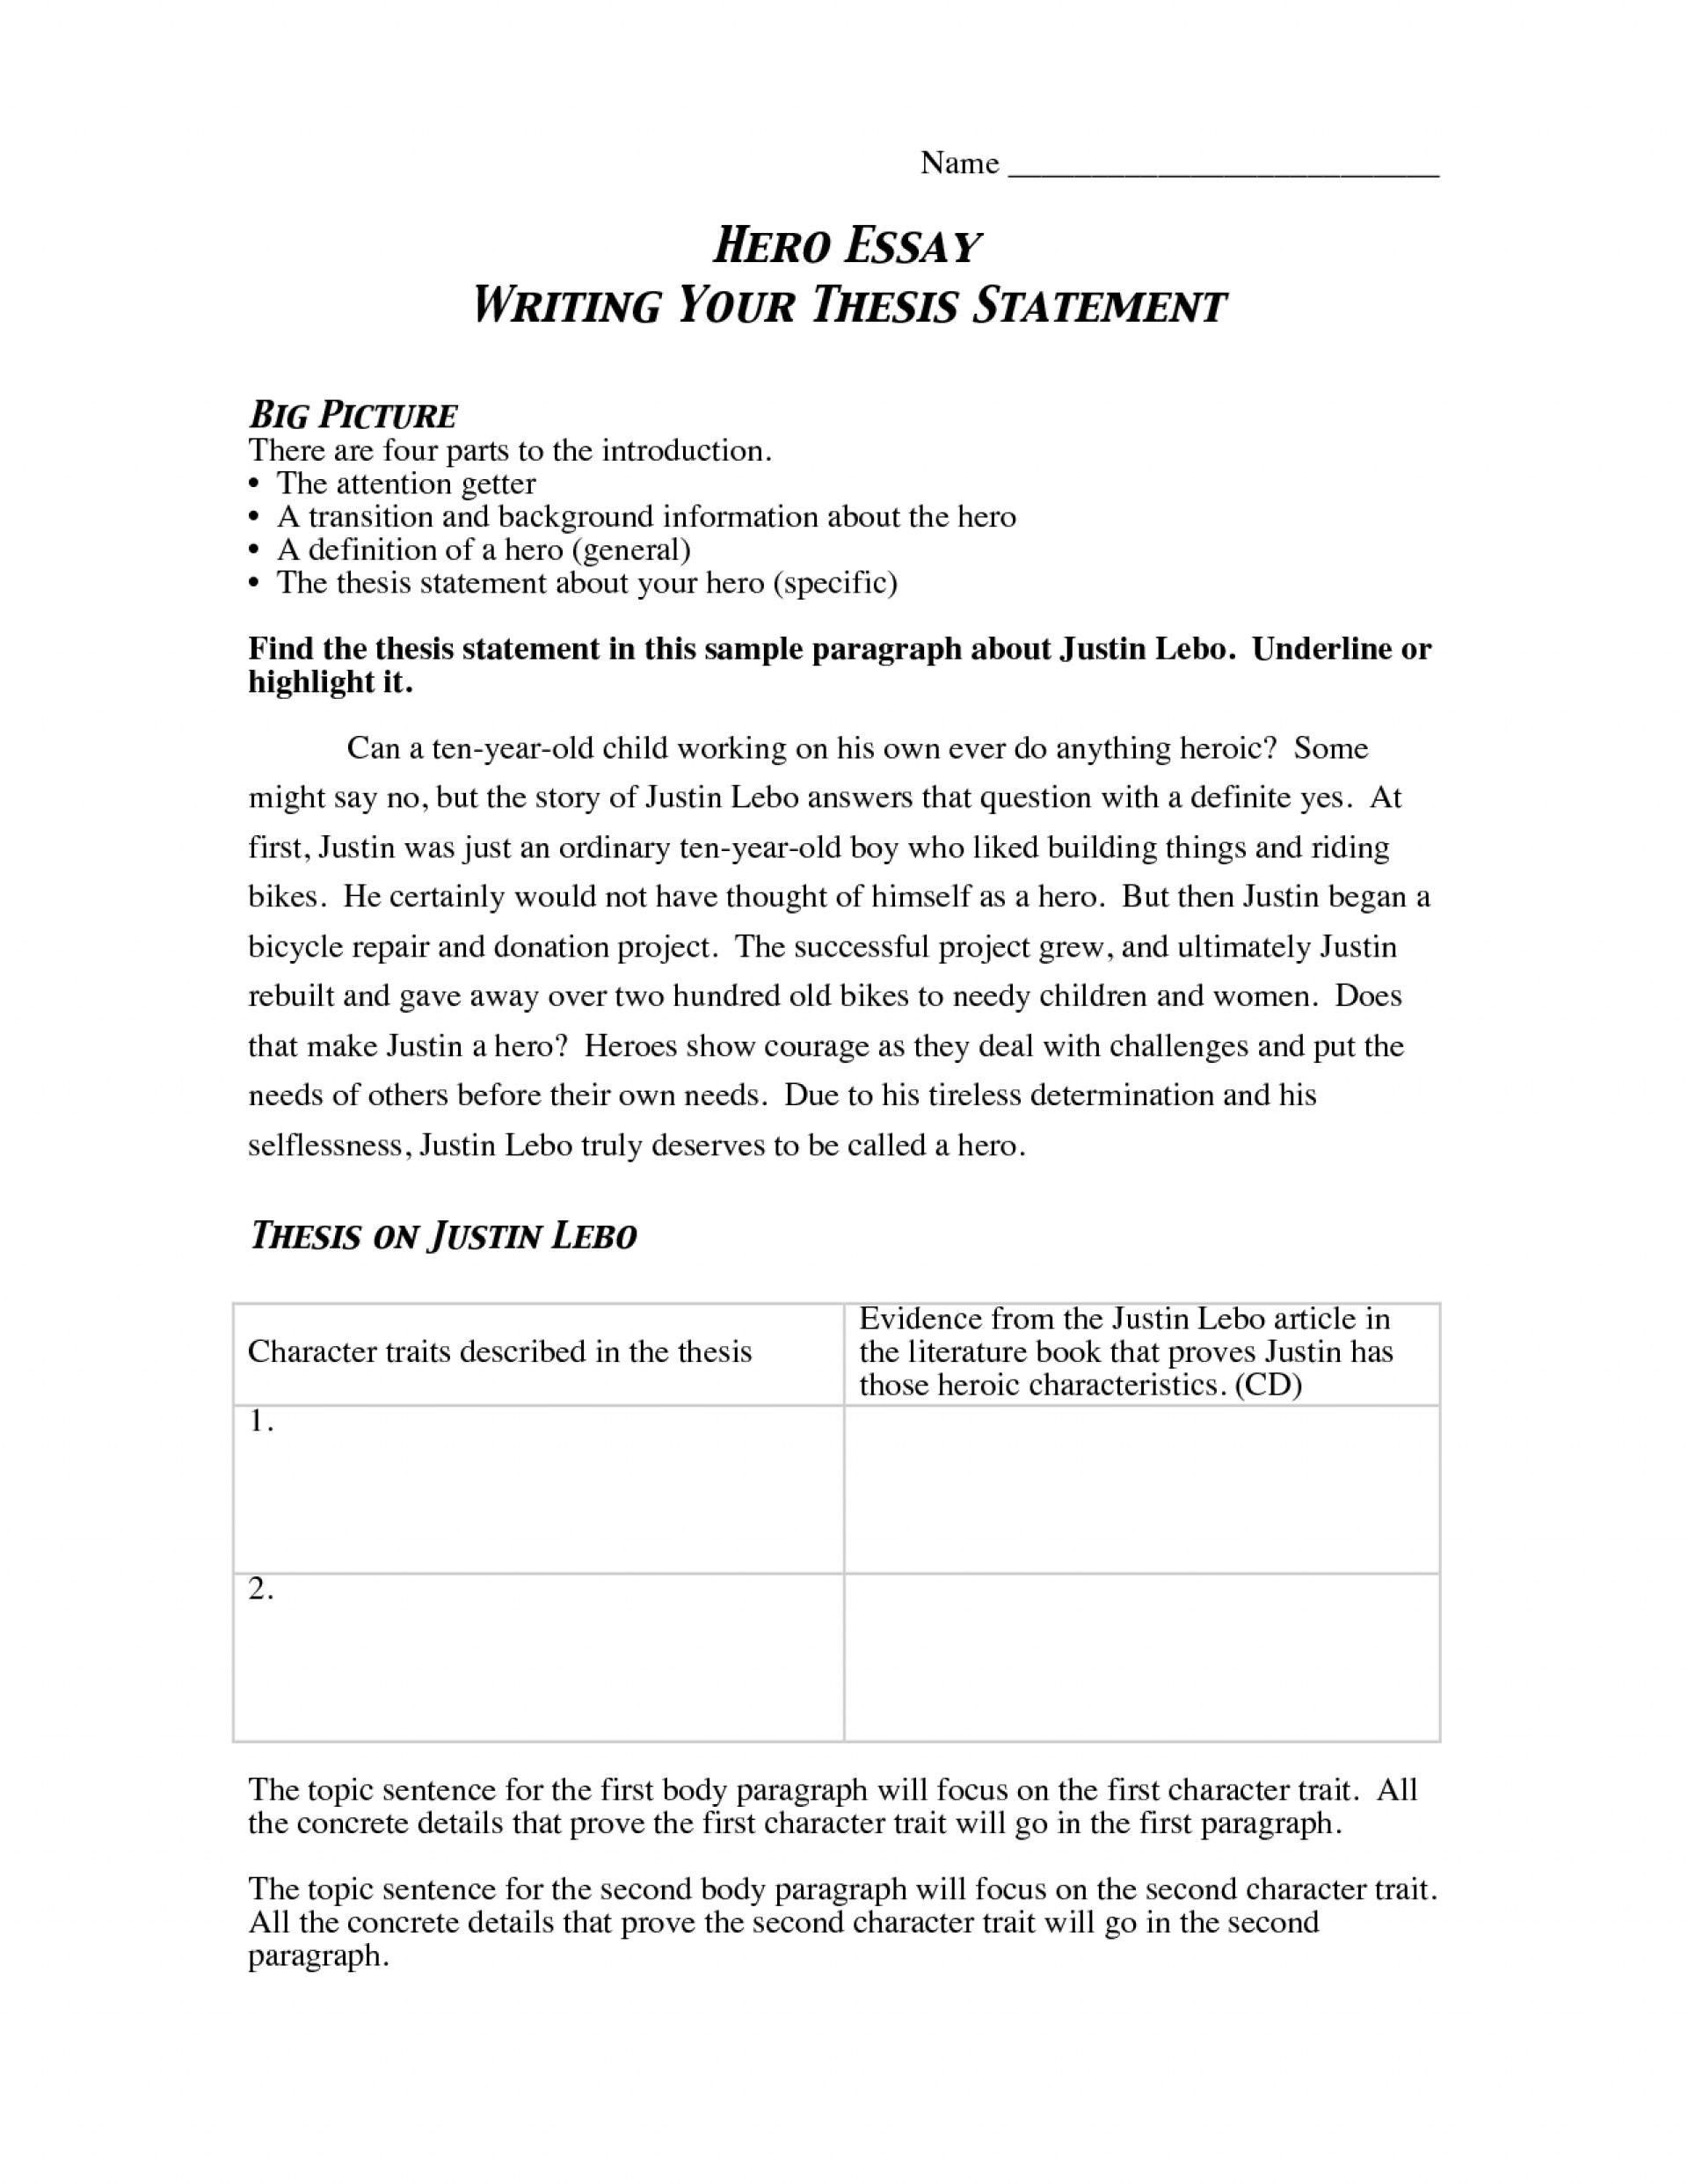 027 Kfvtsngbe0 Essay Example What Is Thesis Statement In Fascinating A An The Purpose Of Argumentative Informative 1920